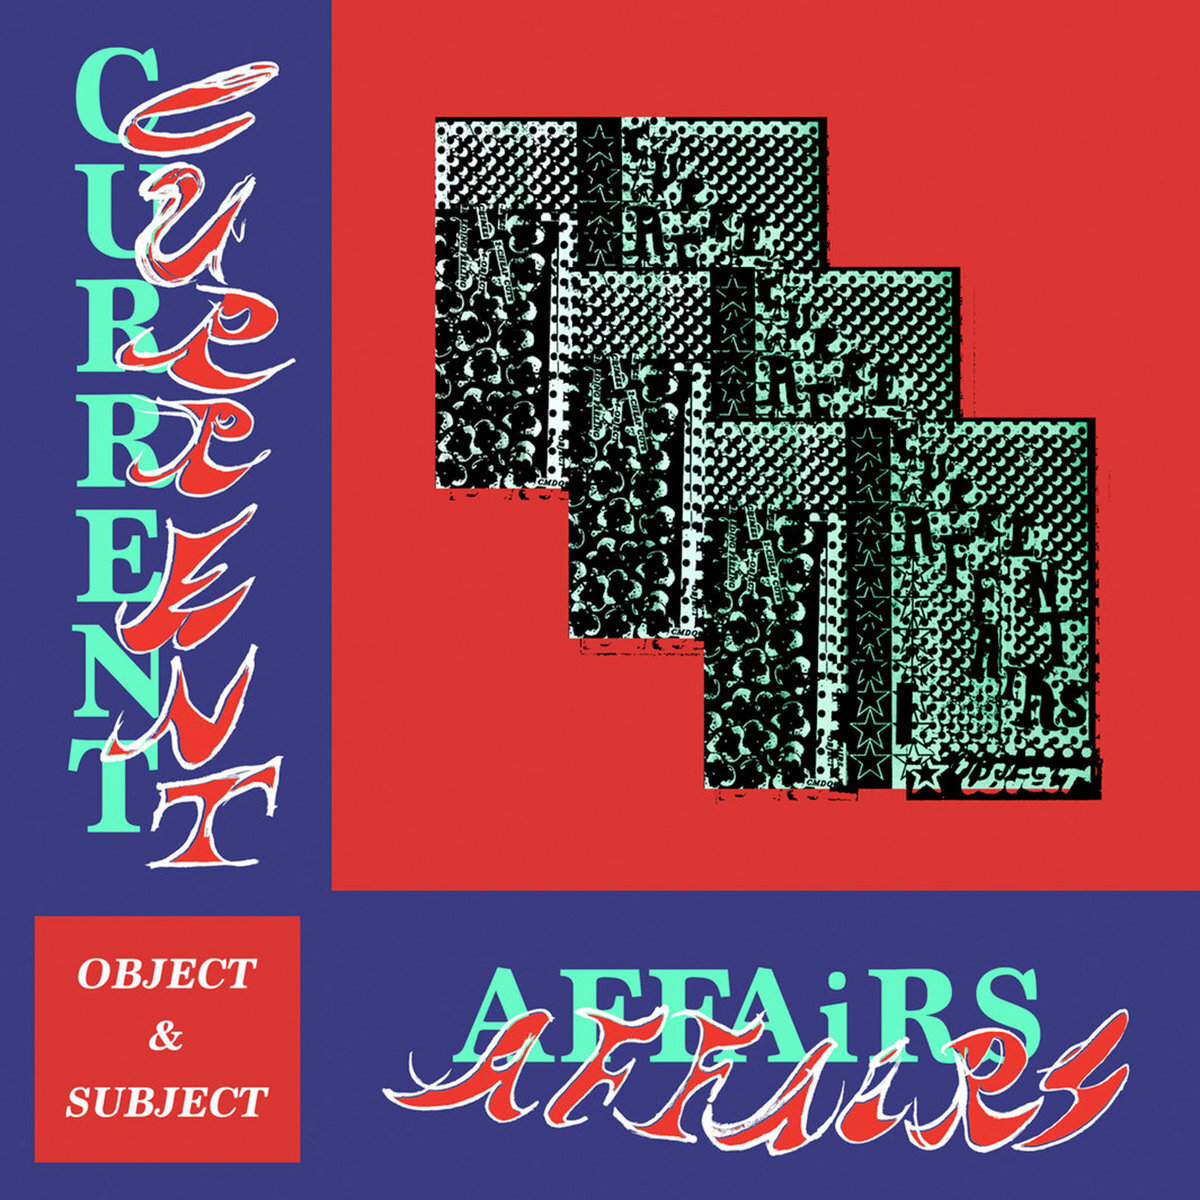 Current Affairs	- Object & Subject (LTD. Purple Color LP)